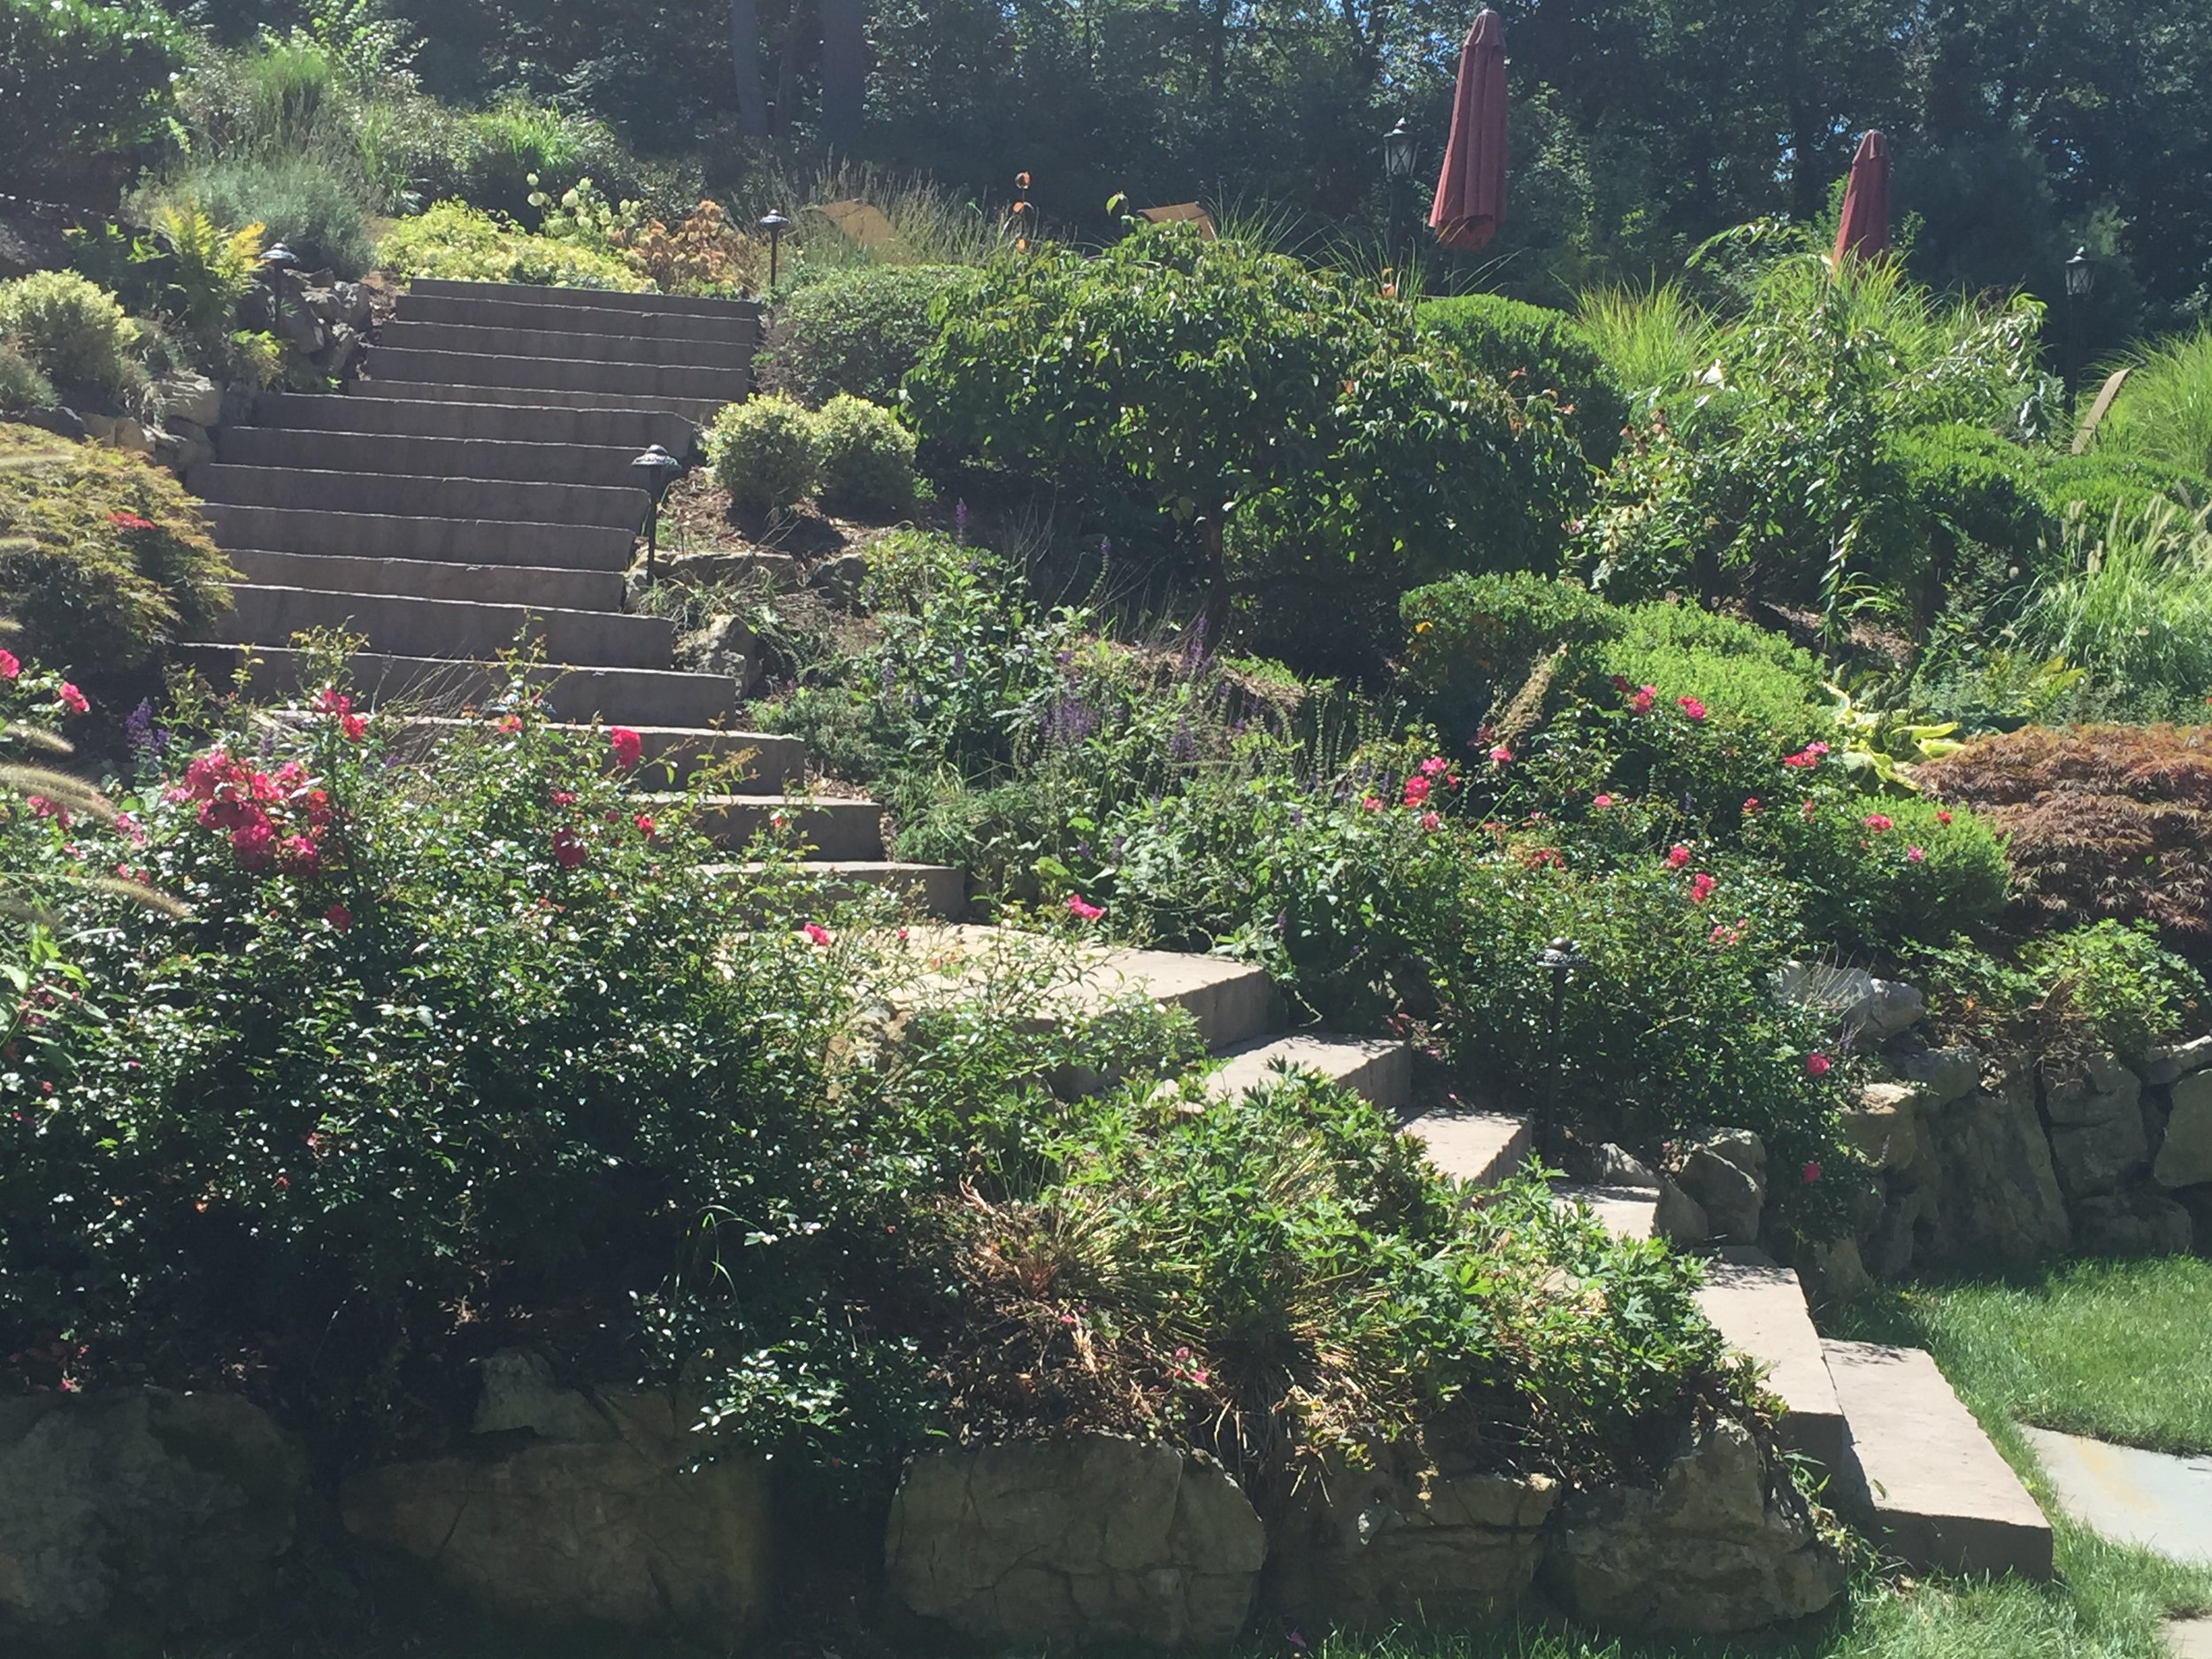 Professional landscape design planting company in Long Island, NY